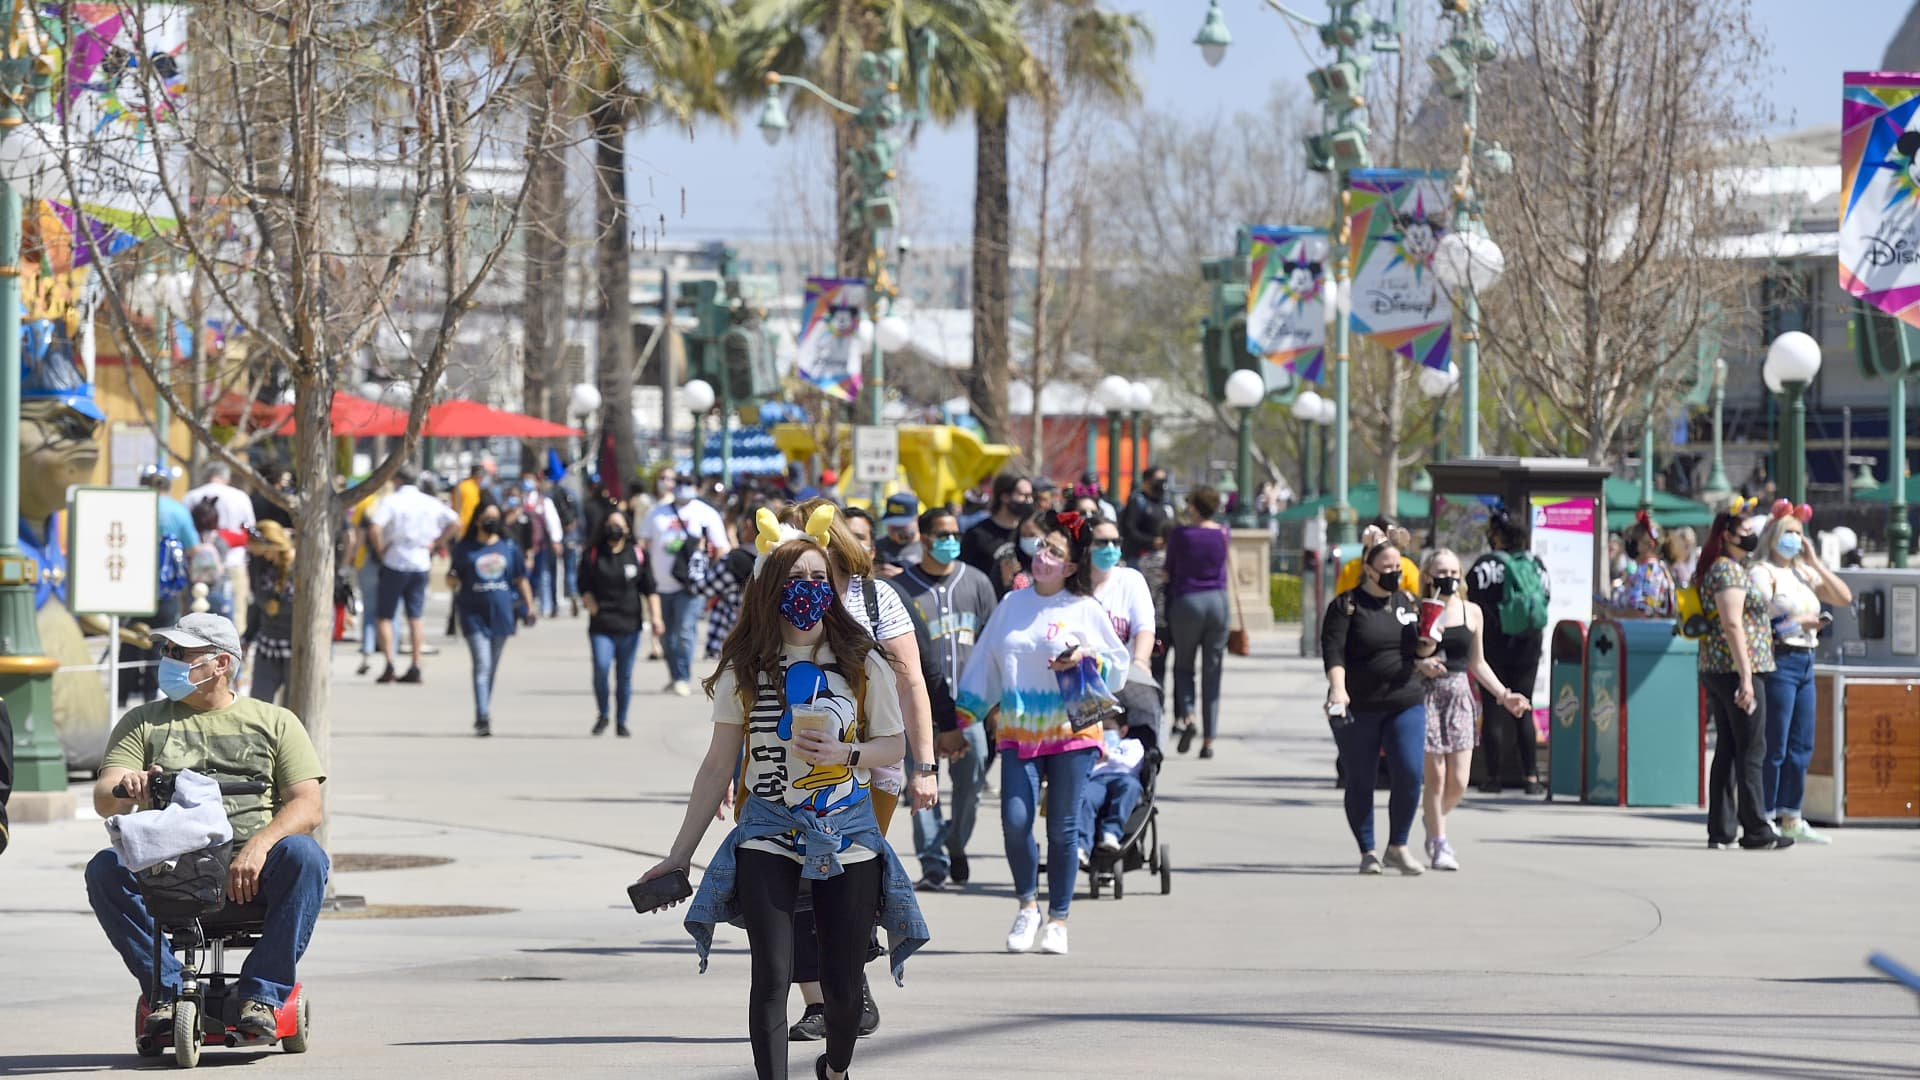 Visitors walk along Paradise Gardens Park during Touch of Disney at Disney California Adventure in Anaheim, CA, on Thursday, March 18, 2021.